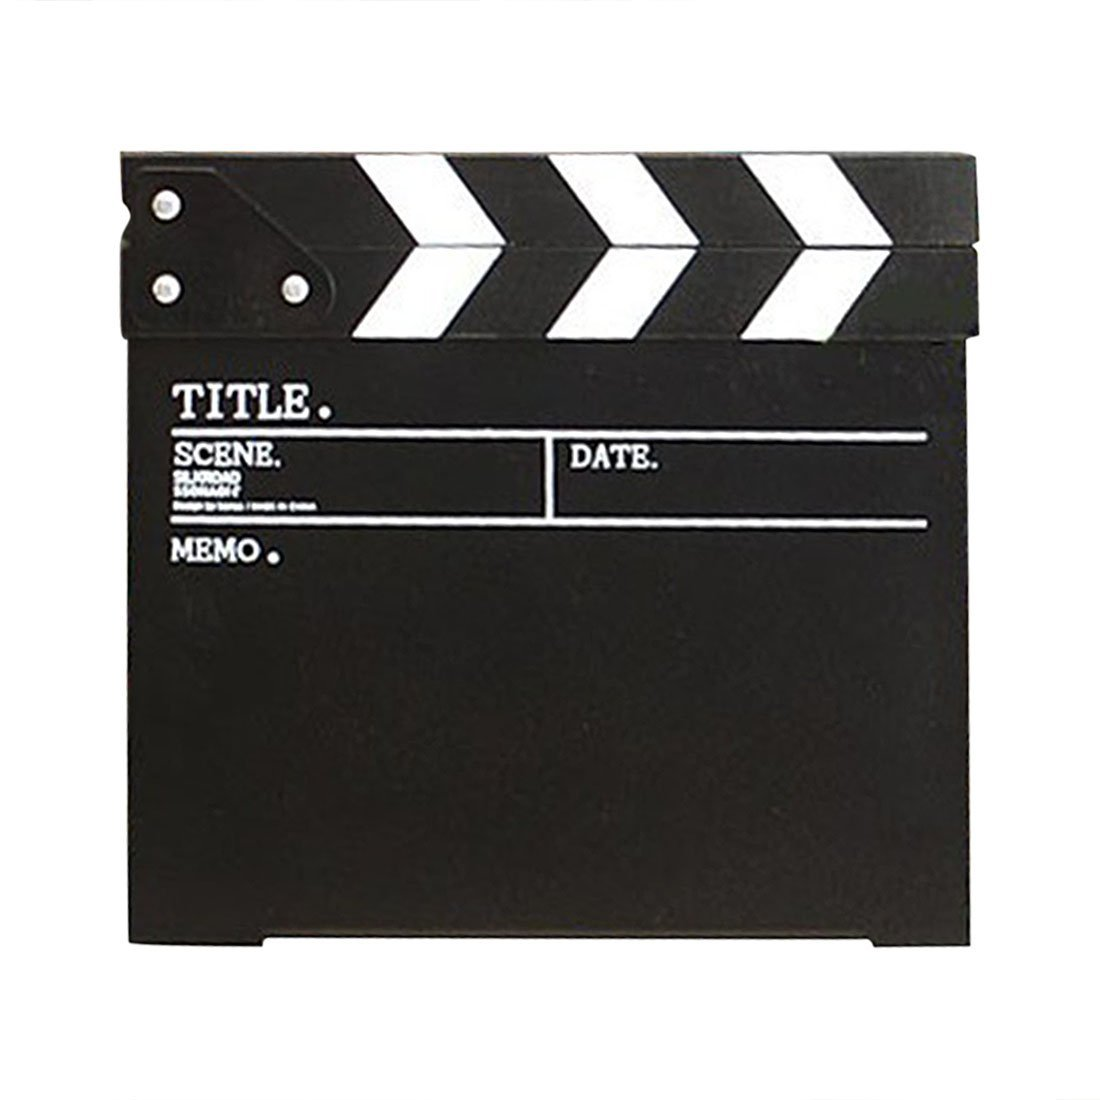 Clapboard, Yamix Wooden Director Film Clapboard Director Film Movie Cut Action Scene Slate Board Clapper Board Slate - Black